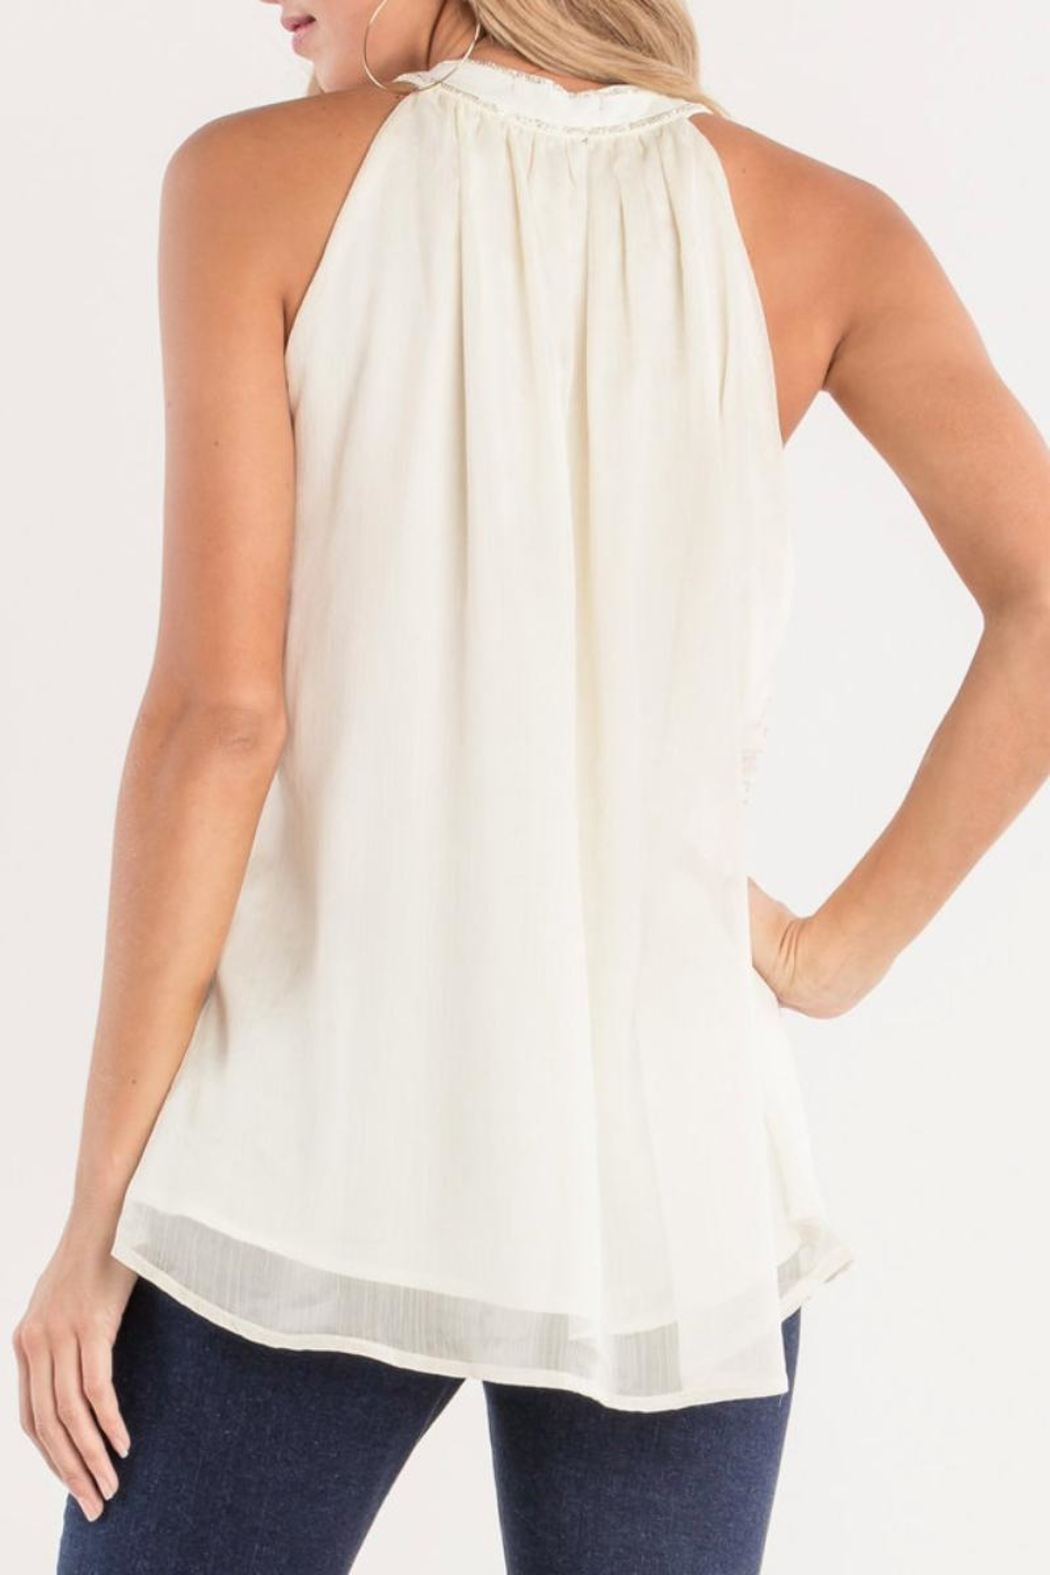 Miss Me White Beaded-Keyhole Blouse - Side Cropped Image